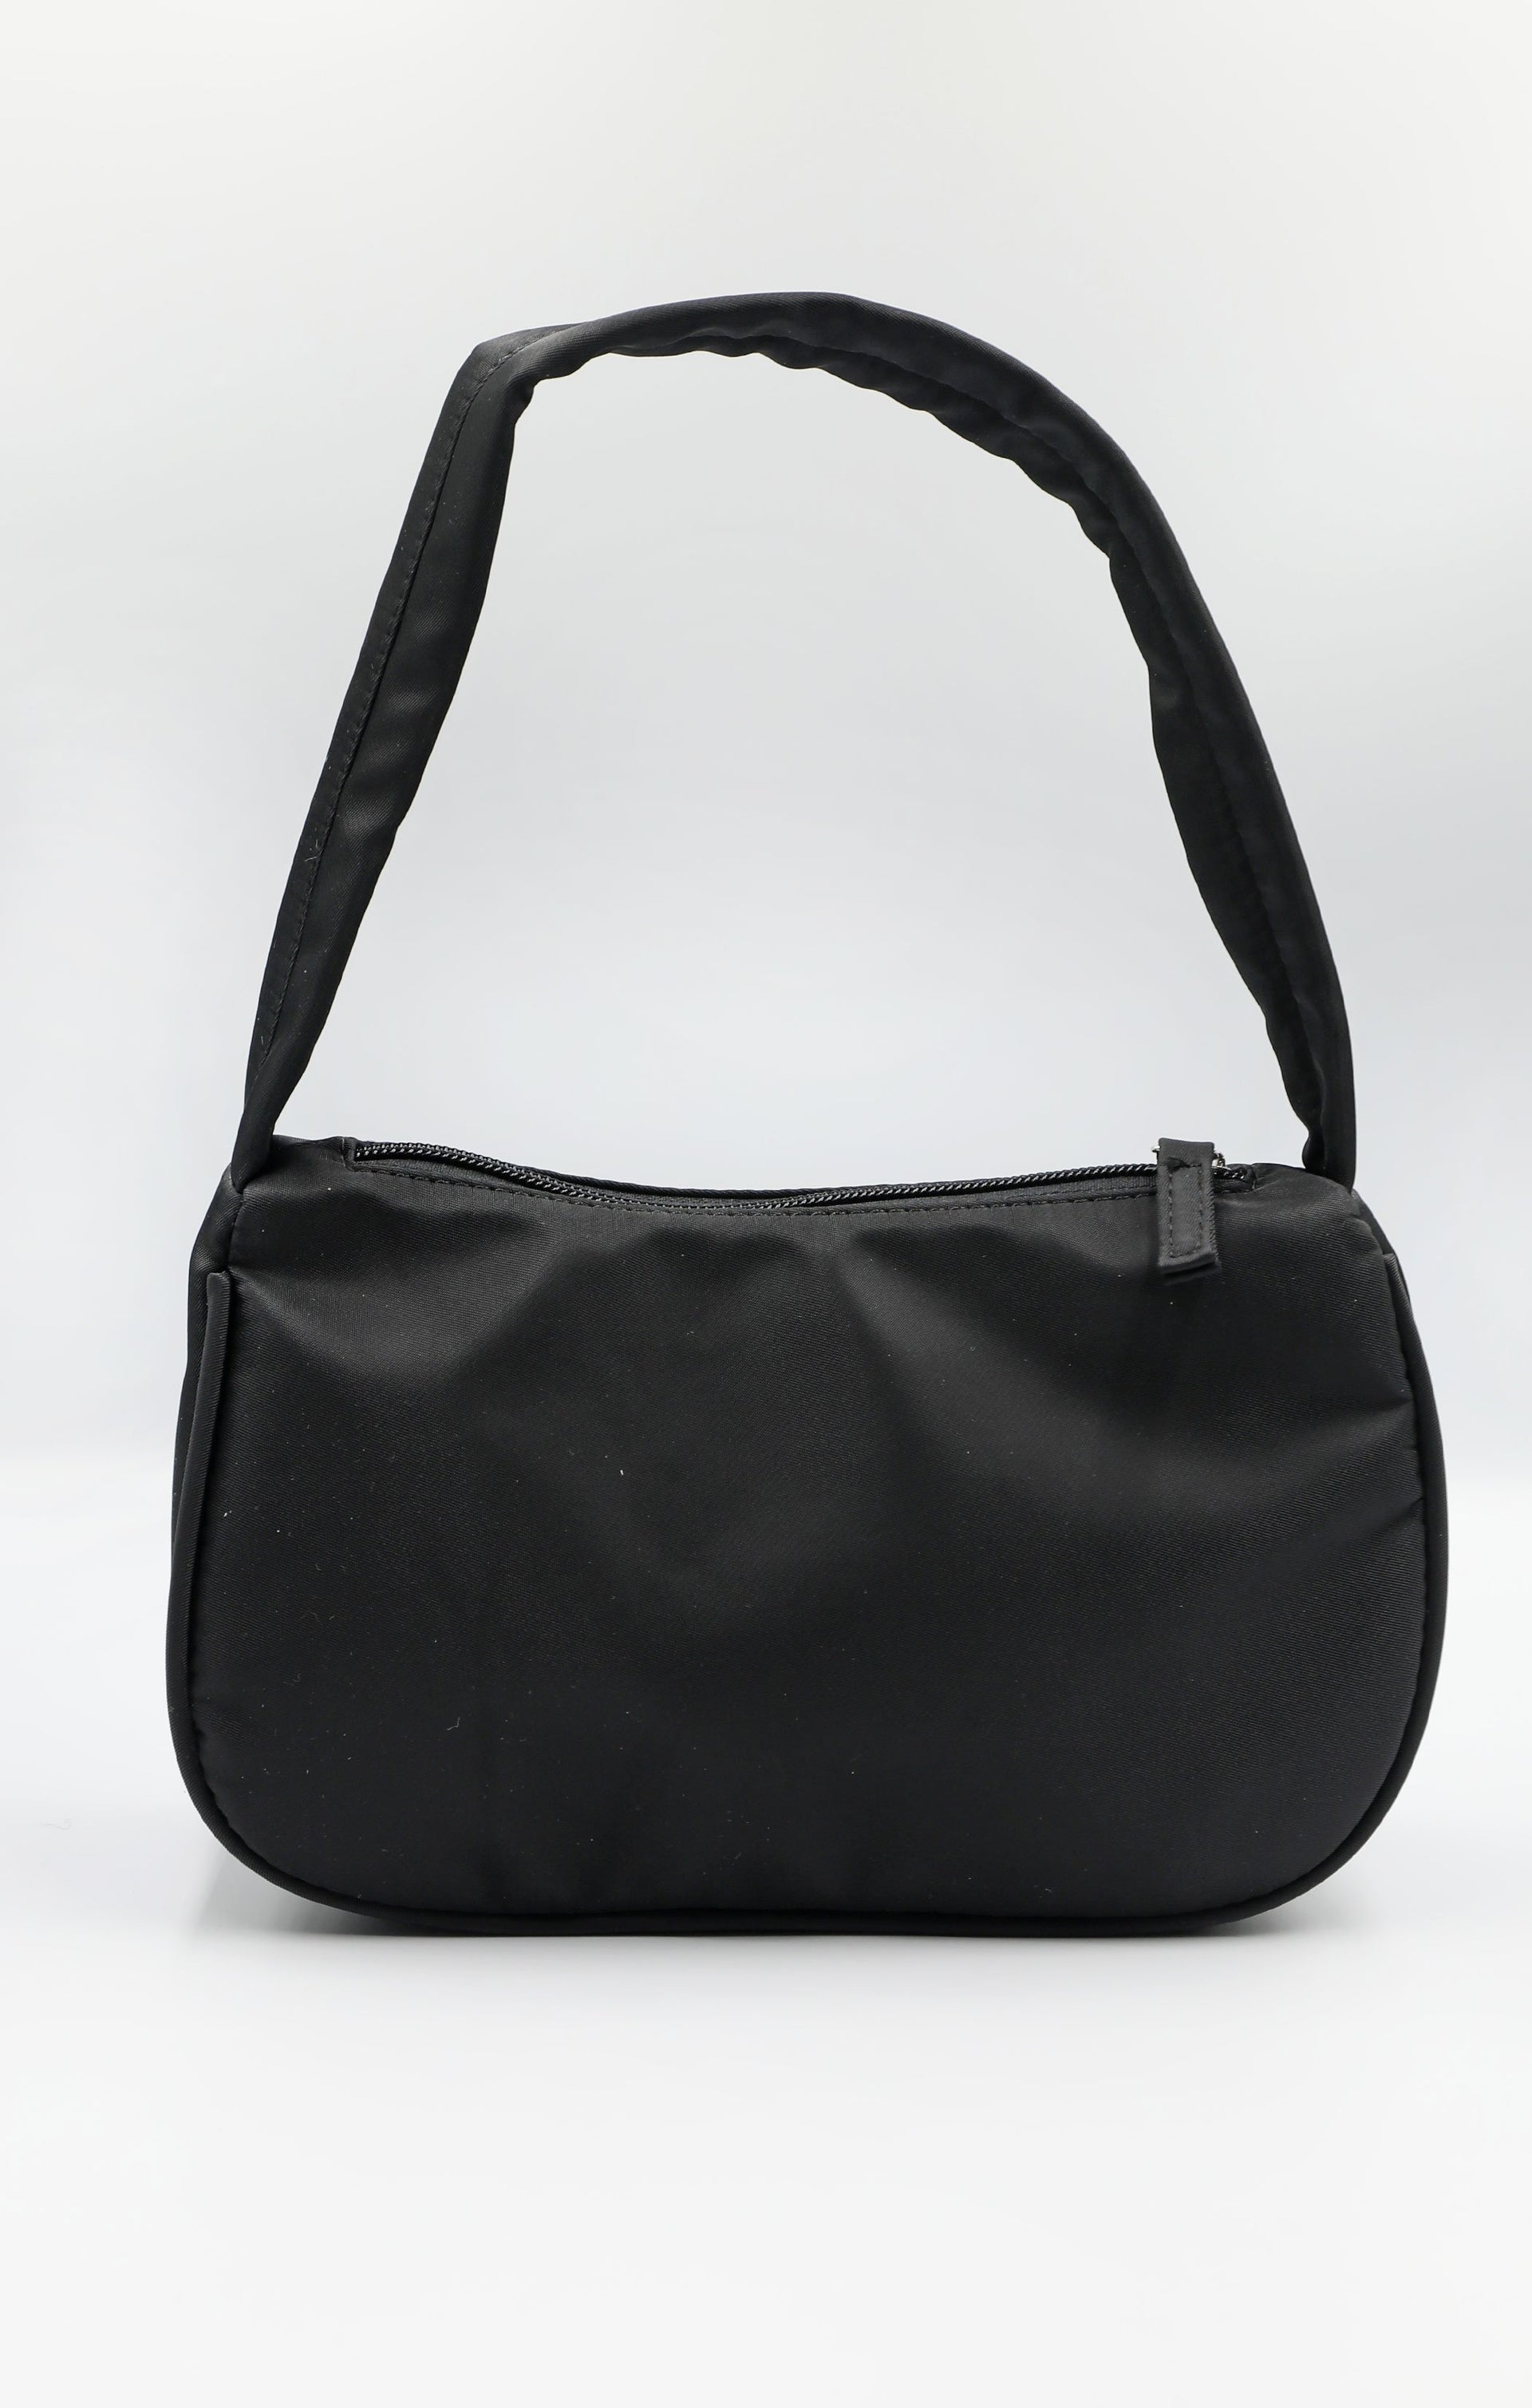 Black Nylon 90's Shoulder Bag - Samantha